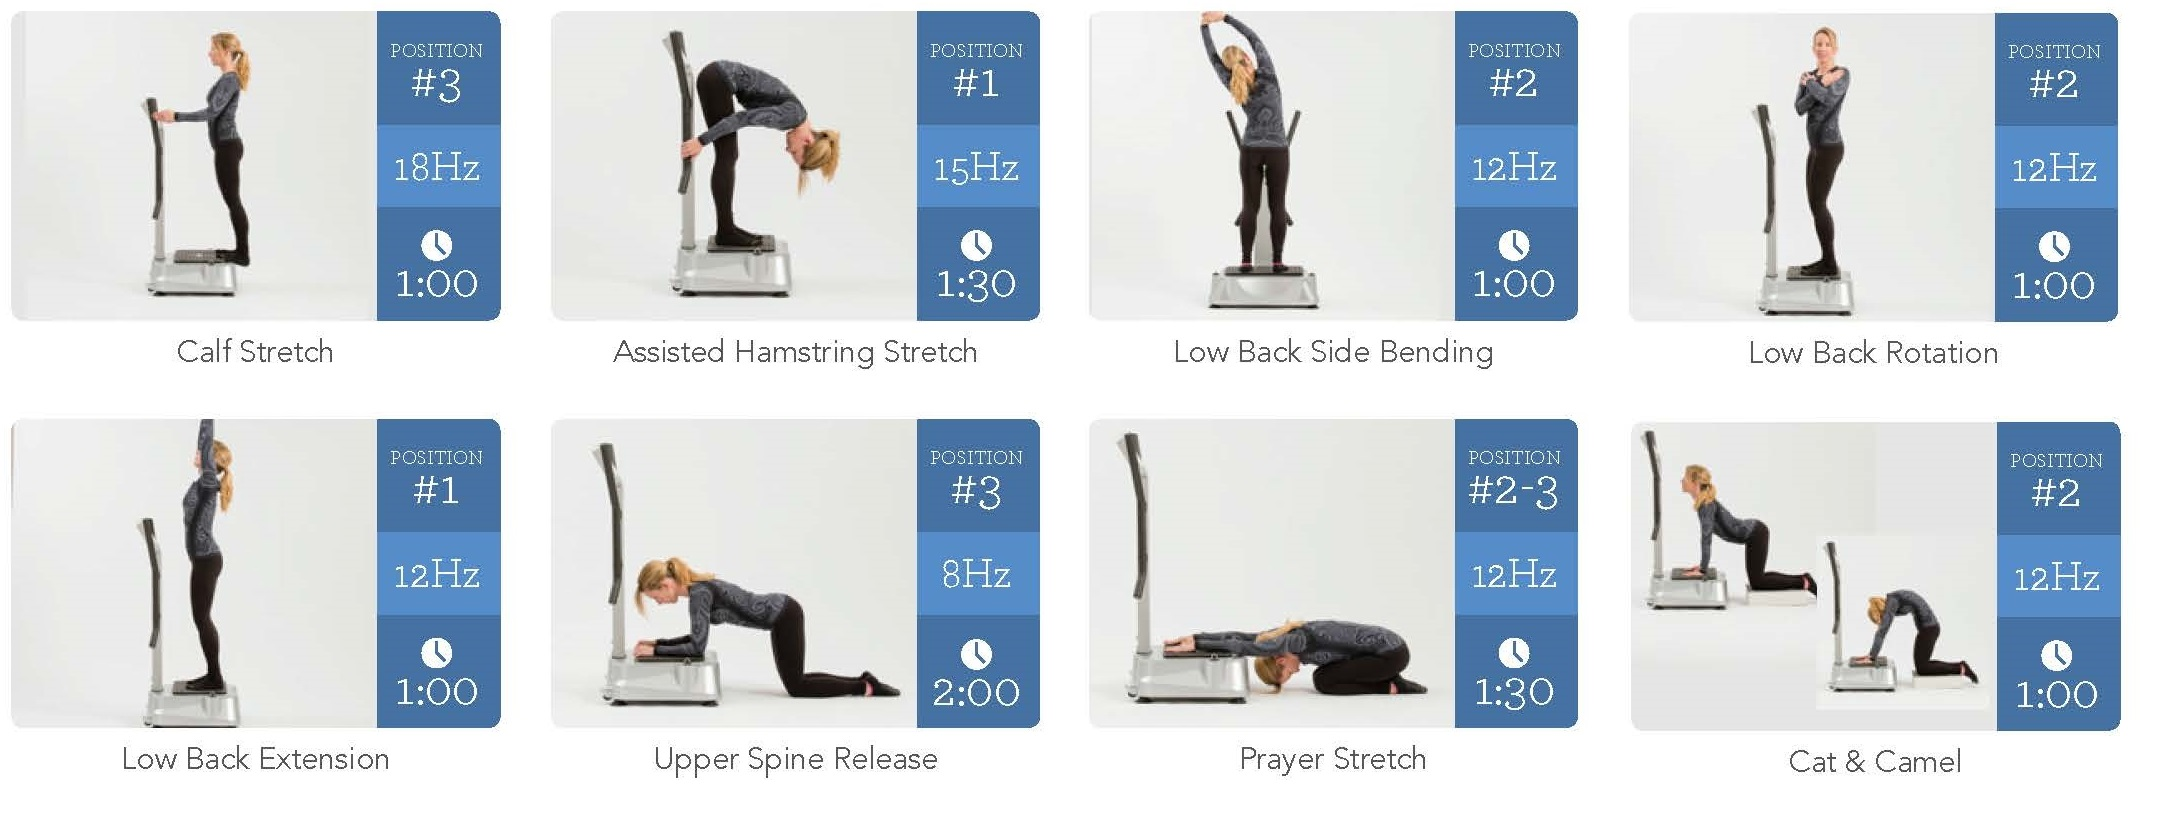 Hypervibe WBV routine and stretches for tight